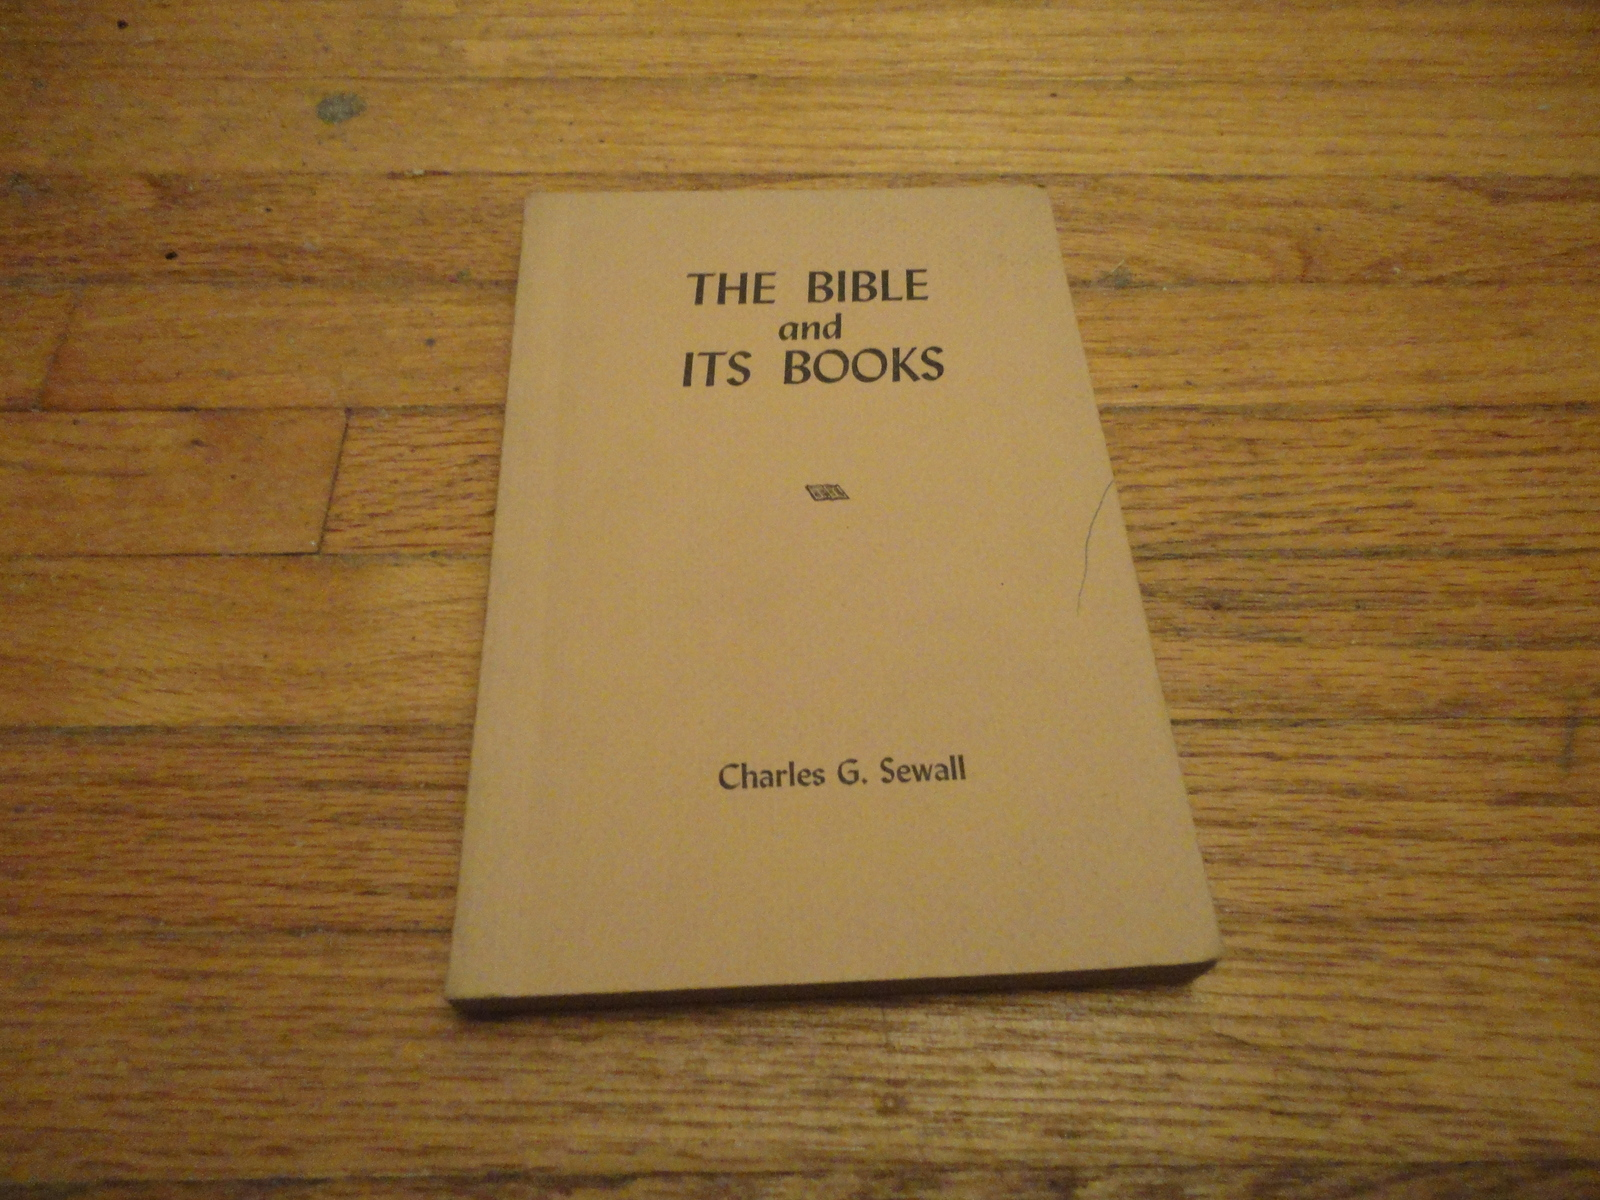 BOOK Charles G. Sewall 'The Bible and Its Books' PB 1941 gospels explained